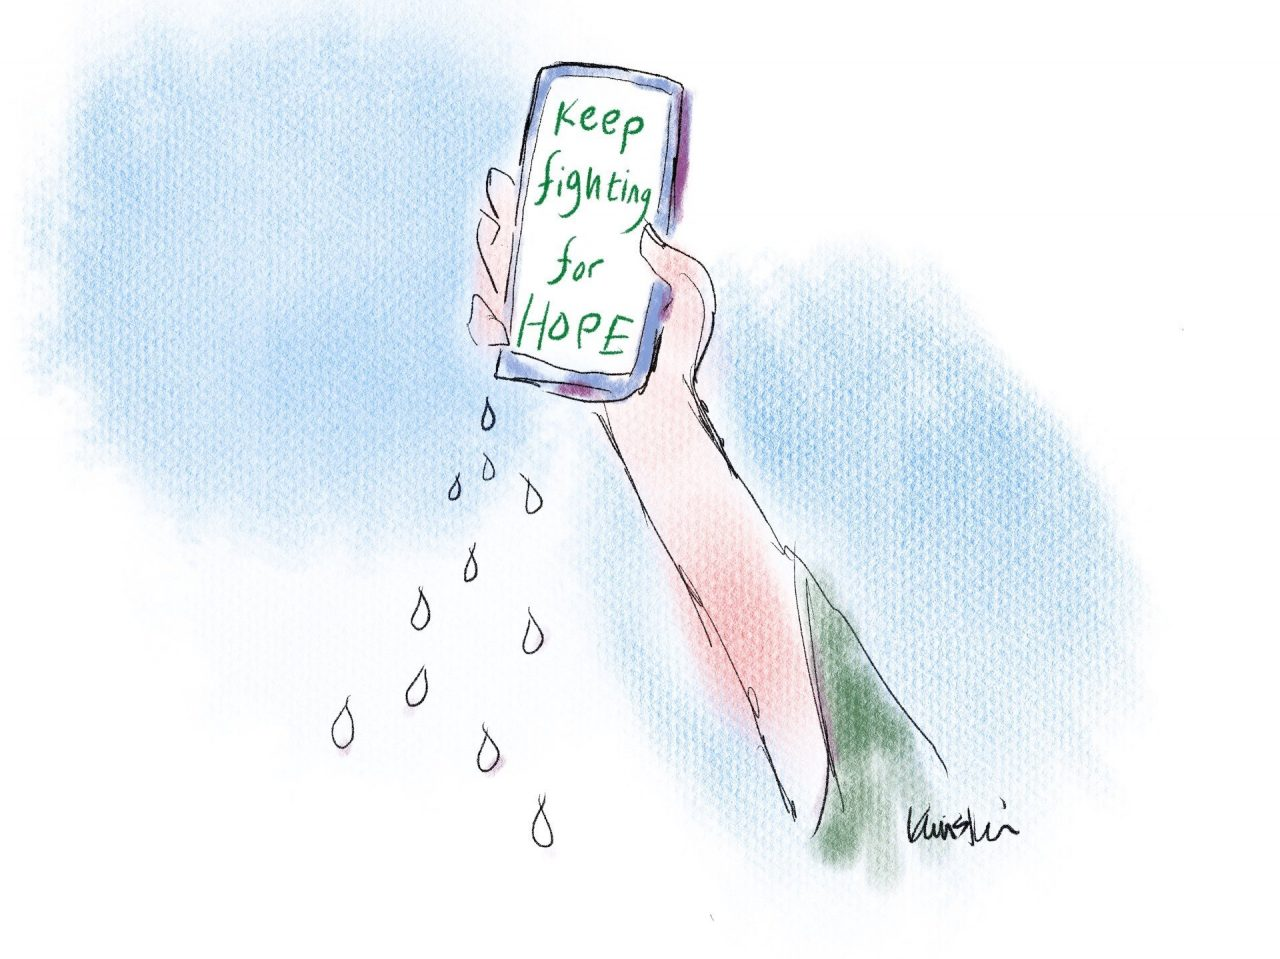 """A hand holds up a cellphone with text on it that reads """"Keep fighting for hope."""""""